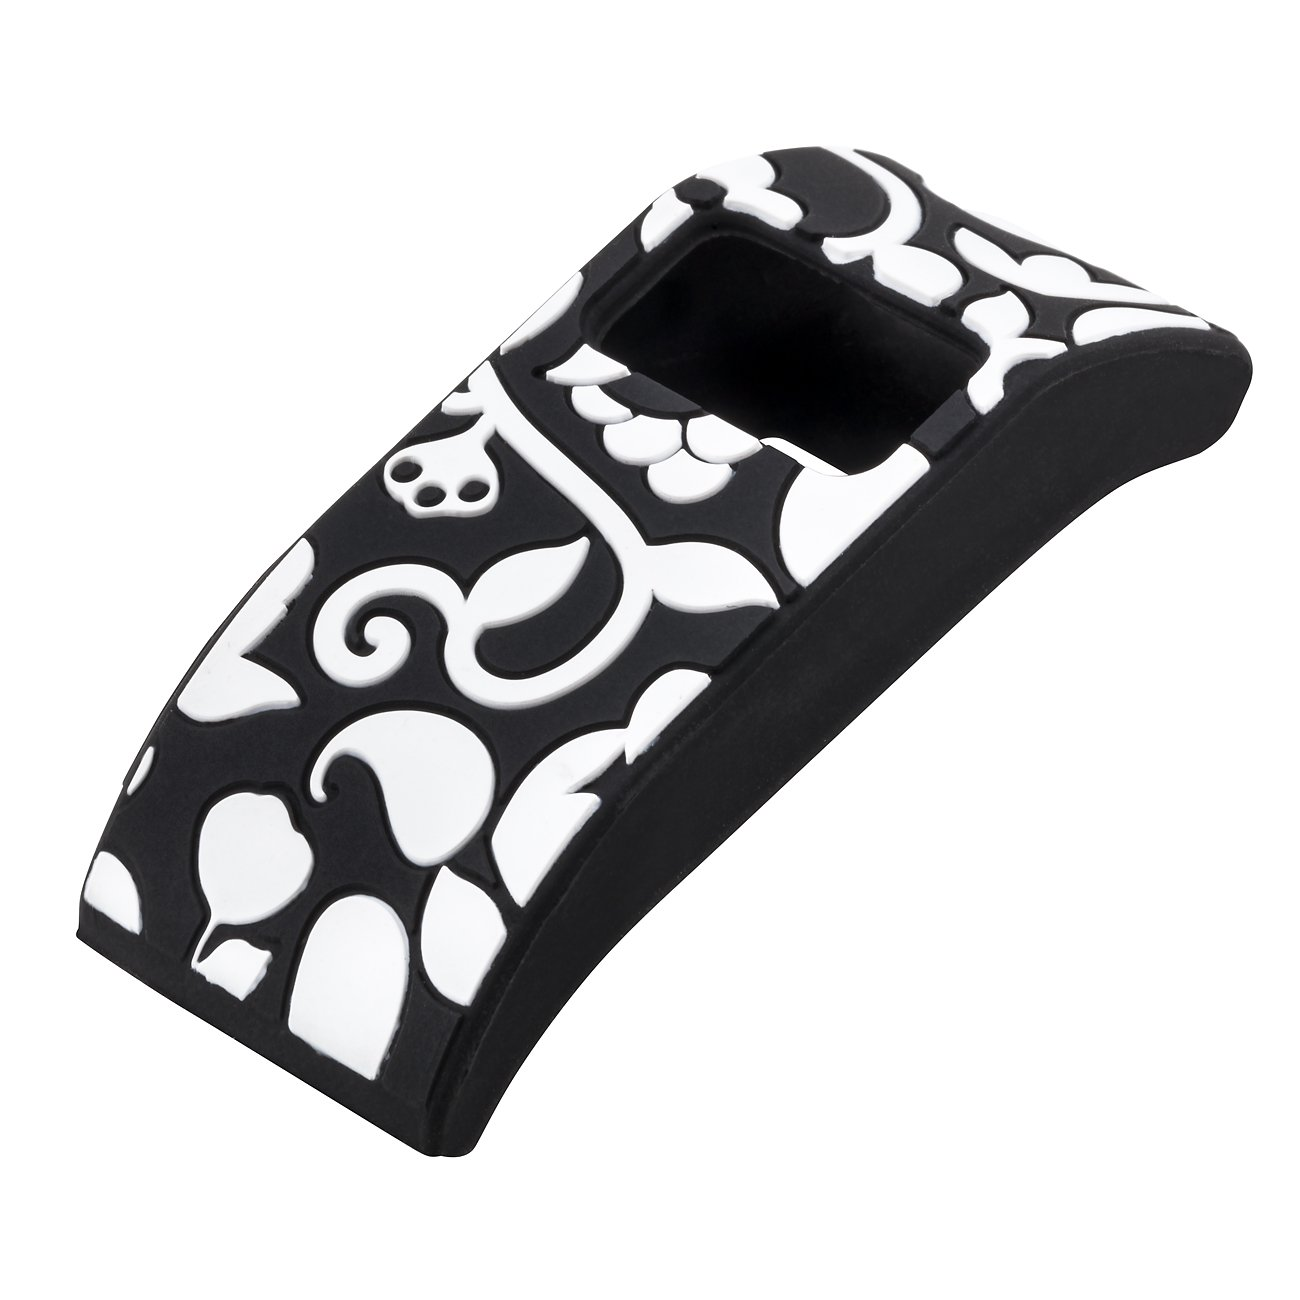 amazon com french bull fitbit charge fitbit charge hr slim amazon com french bull fitbit charge fitbit charge hr slim designer sleeve band cover vines black white sports outdoors